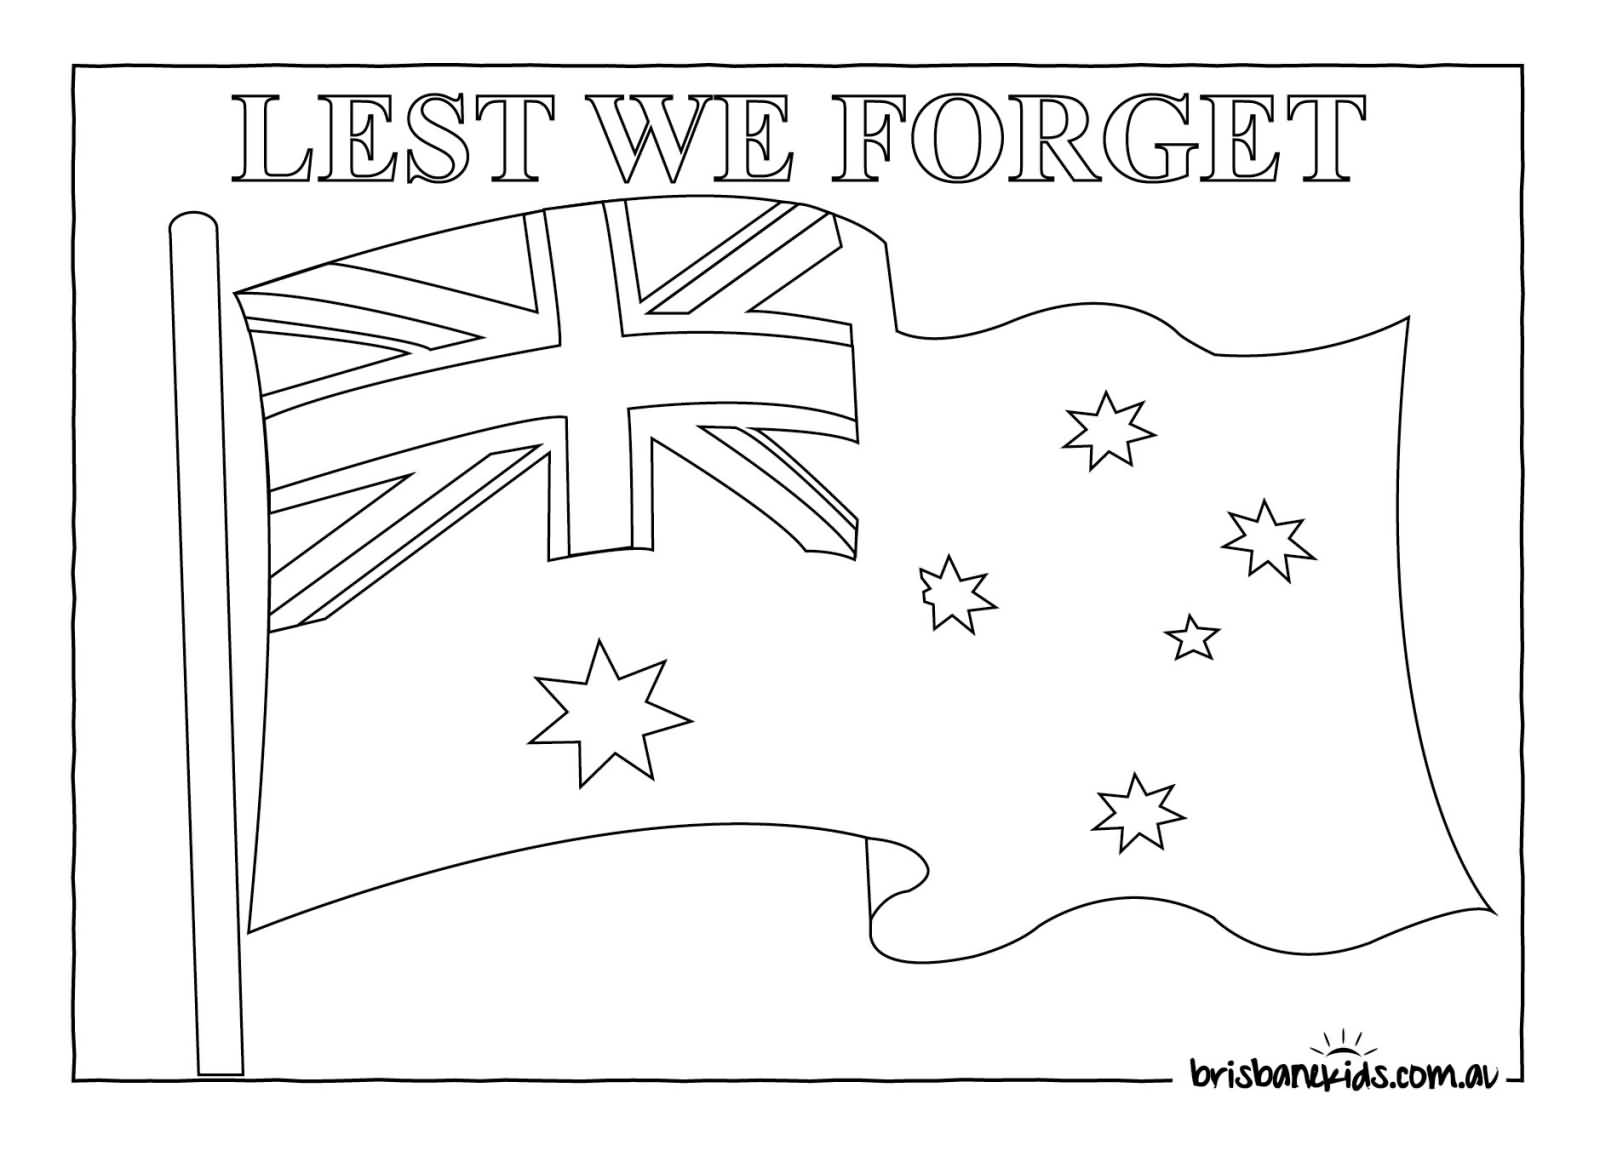 lest we forget anzac day australian flag coloring page